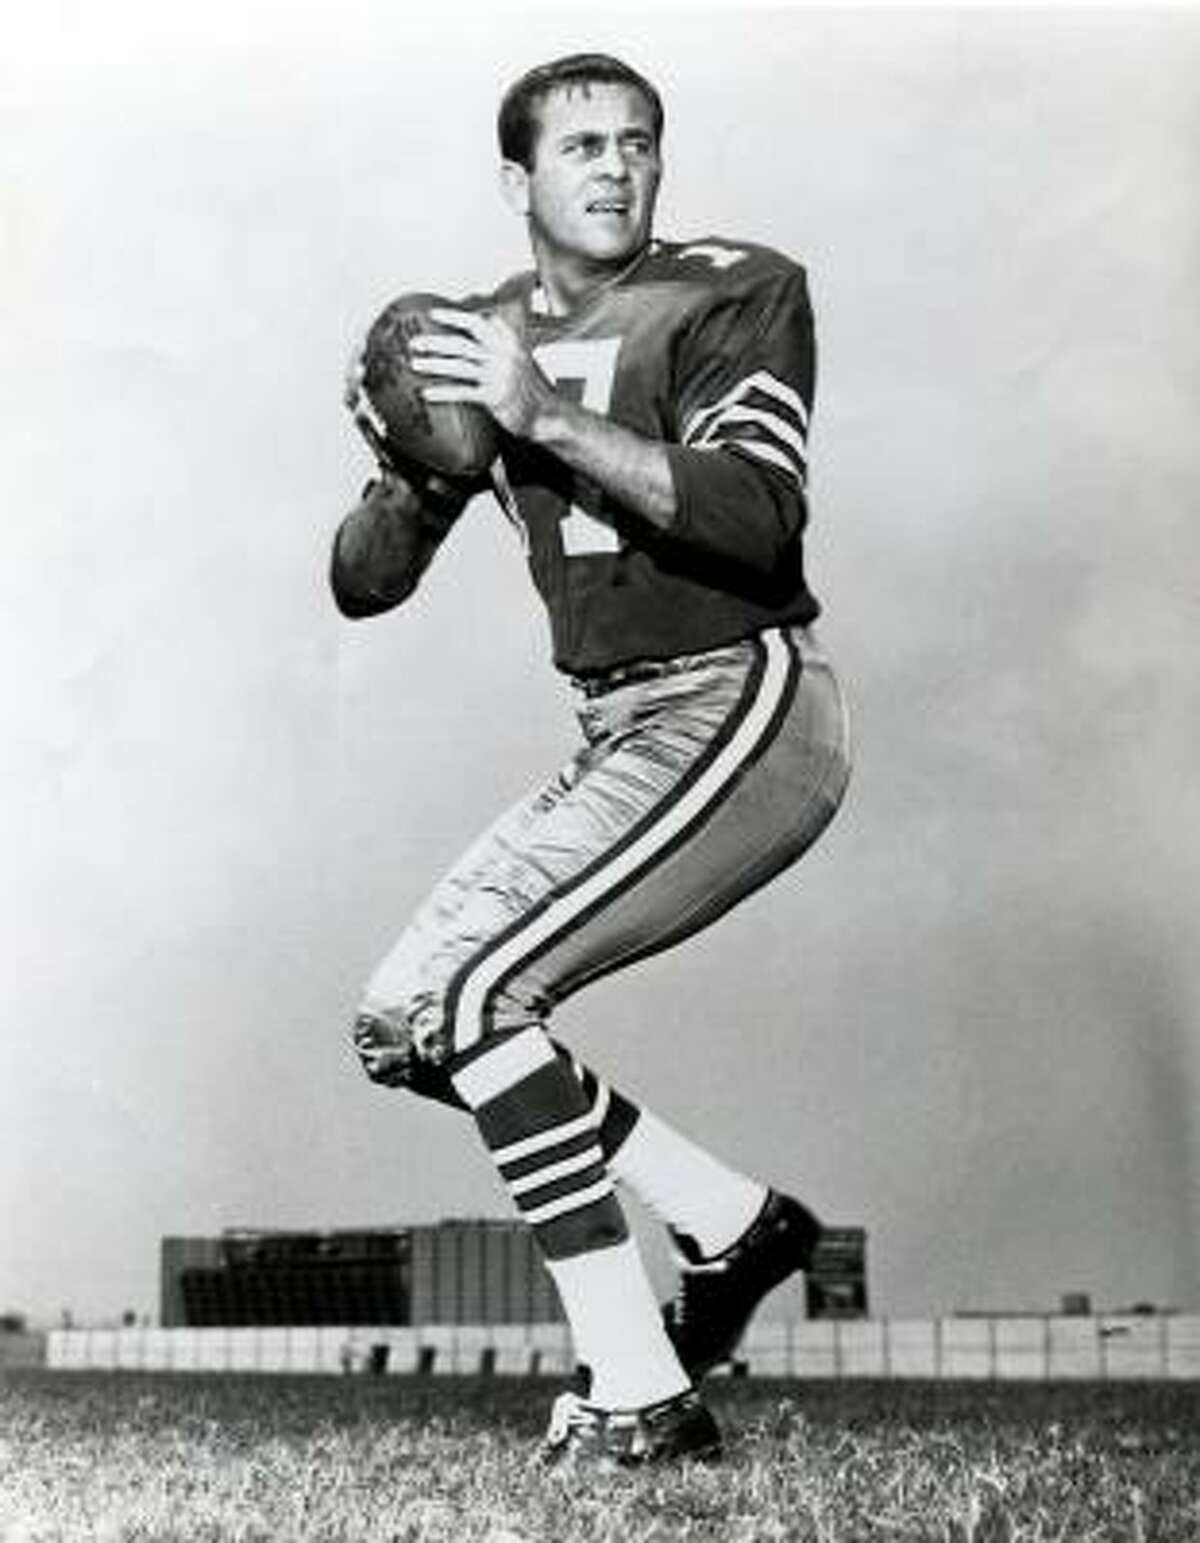 Meredith, who became the Cowboys' starting quarterback in 1965, threw for 17,199 yards and 111 touchdowns. He retired unexpectedly before the 1969 season.